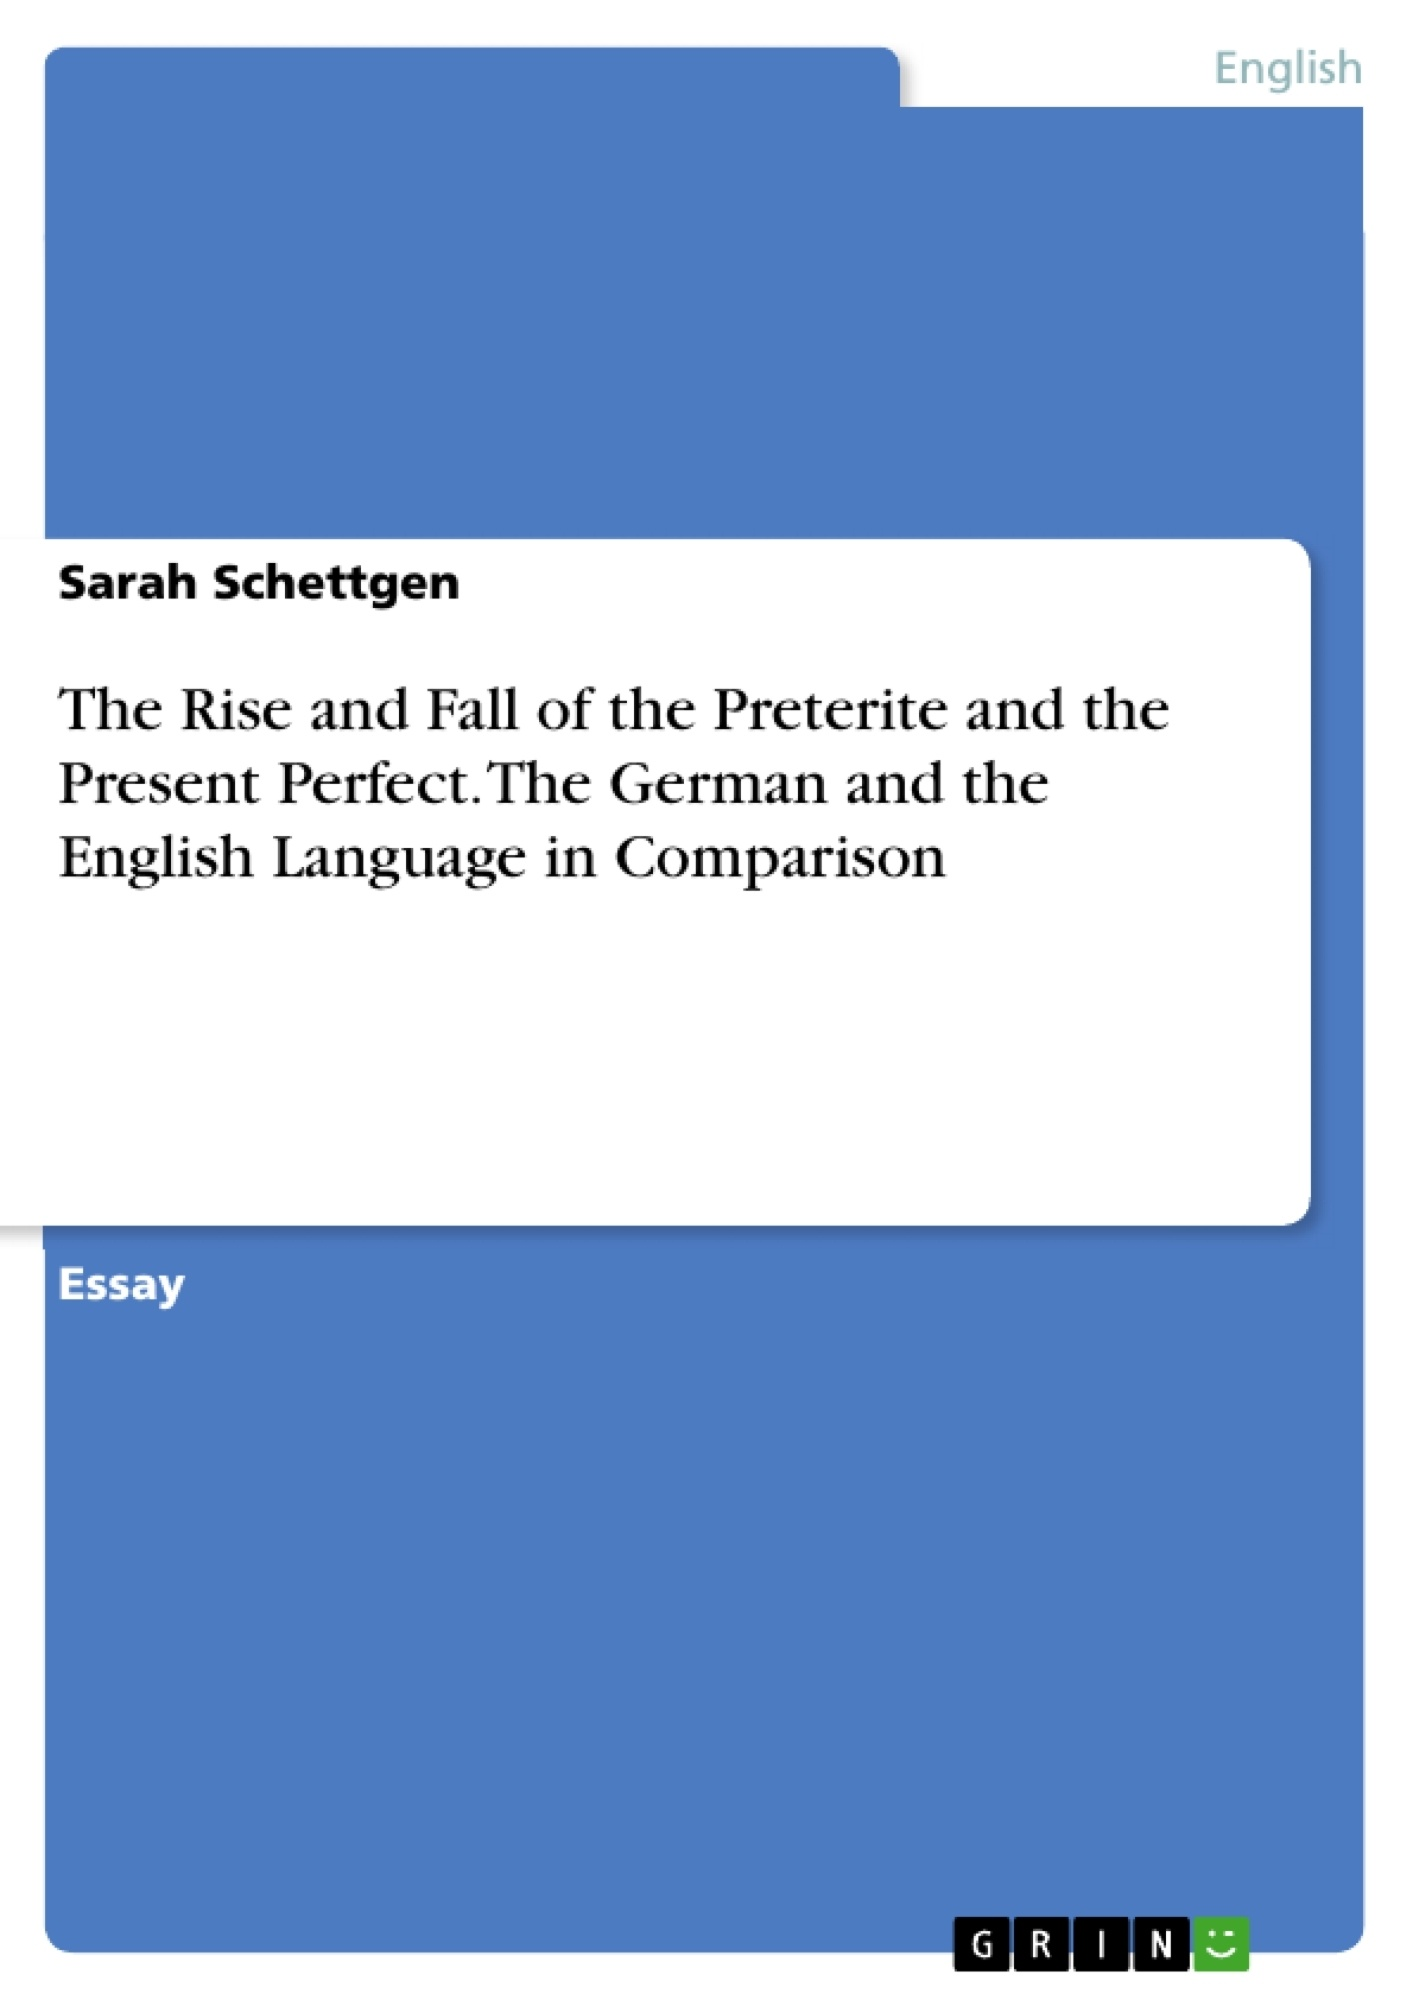 Title: The Rise and Fall of the Preterite and the Present Perfect. The German and the English Language in Comparison